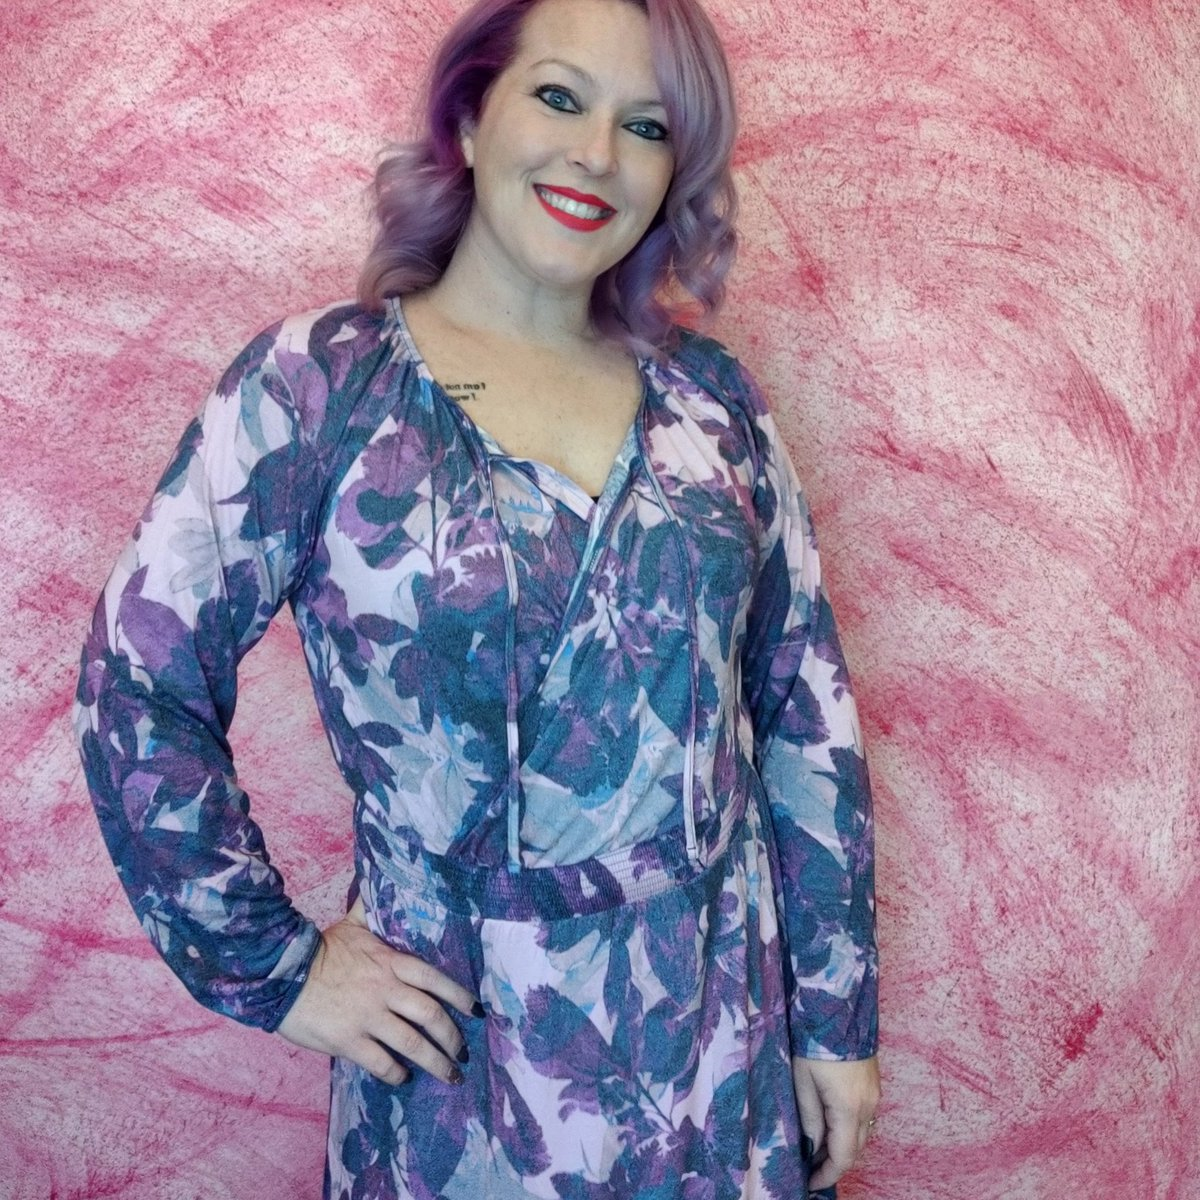 How about being a beauty this Valentine's!  #gorgeous #DressUPnotdown #dress #ValentinesDay #LoveStruckInTheCity #lularoe #loveafterlockup #fun #stylemeup #style #fashion #fashionstyle